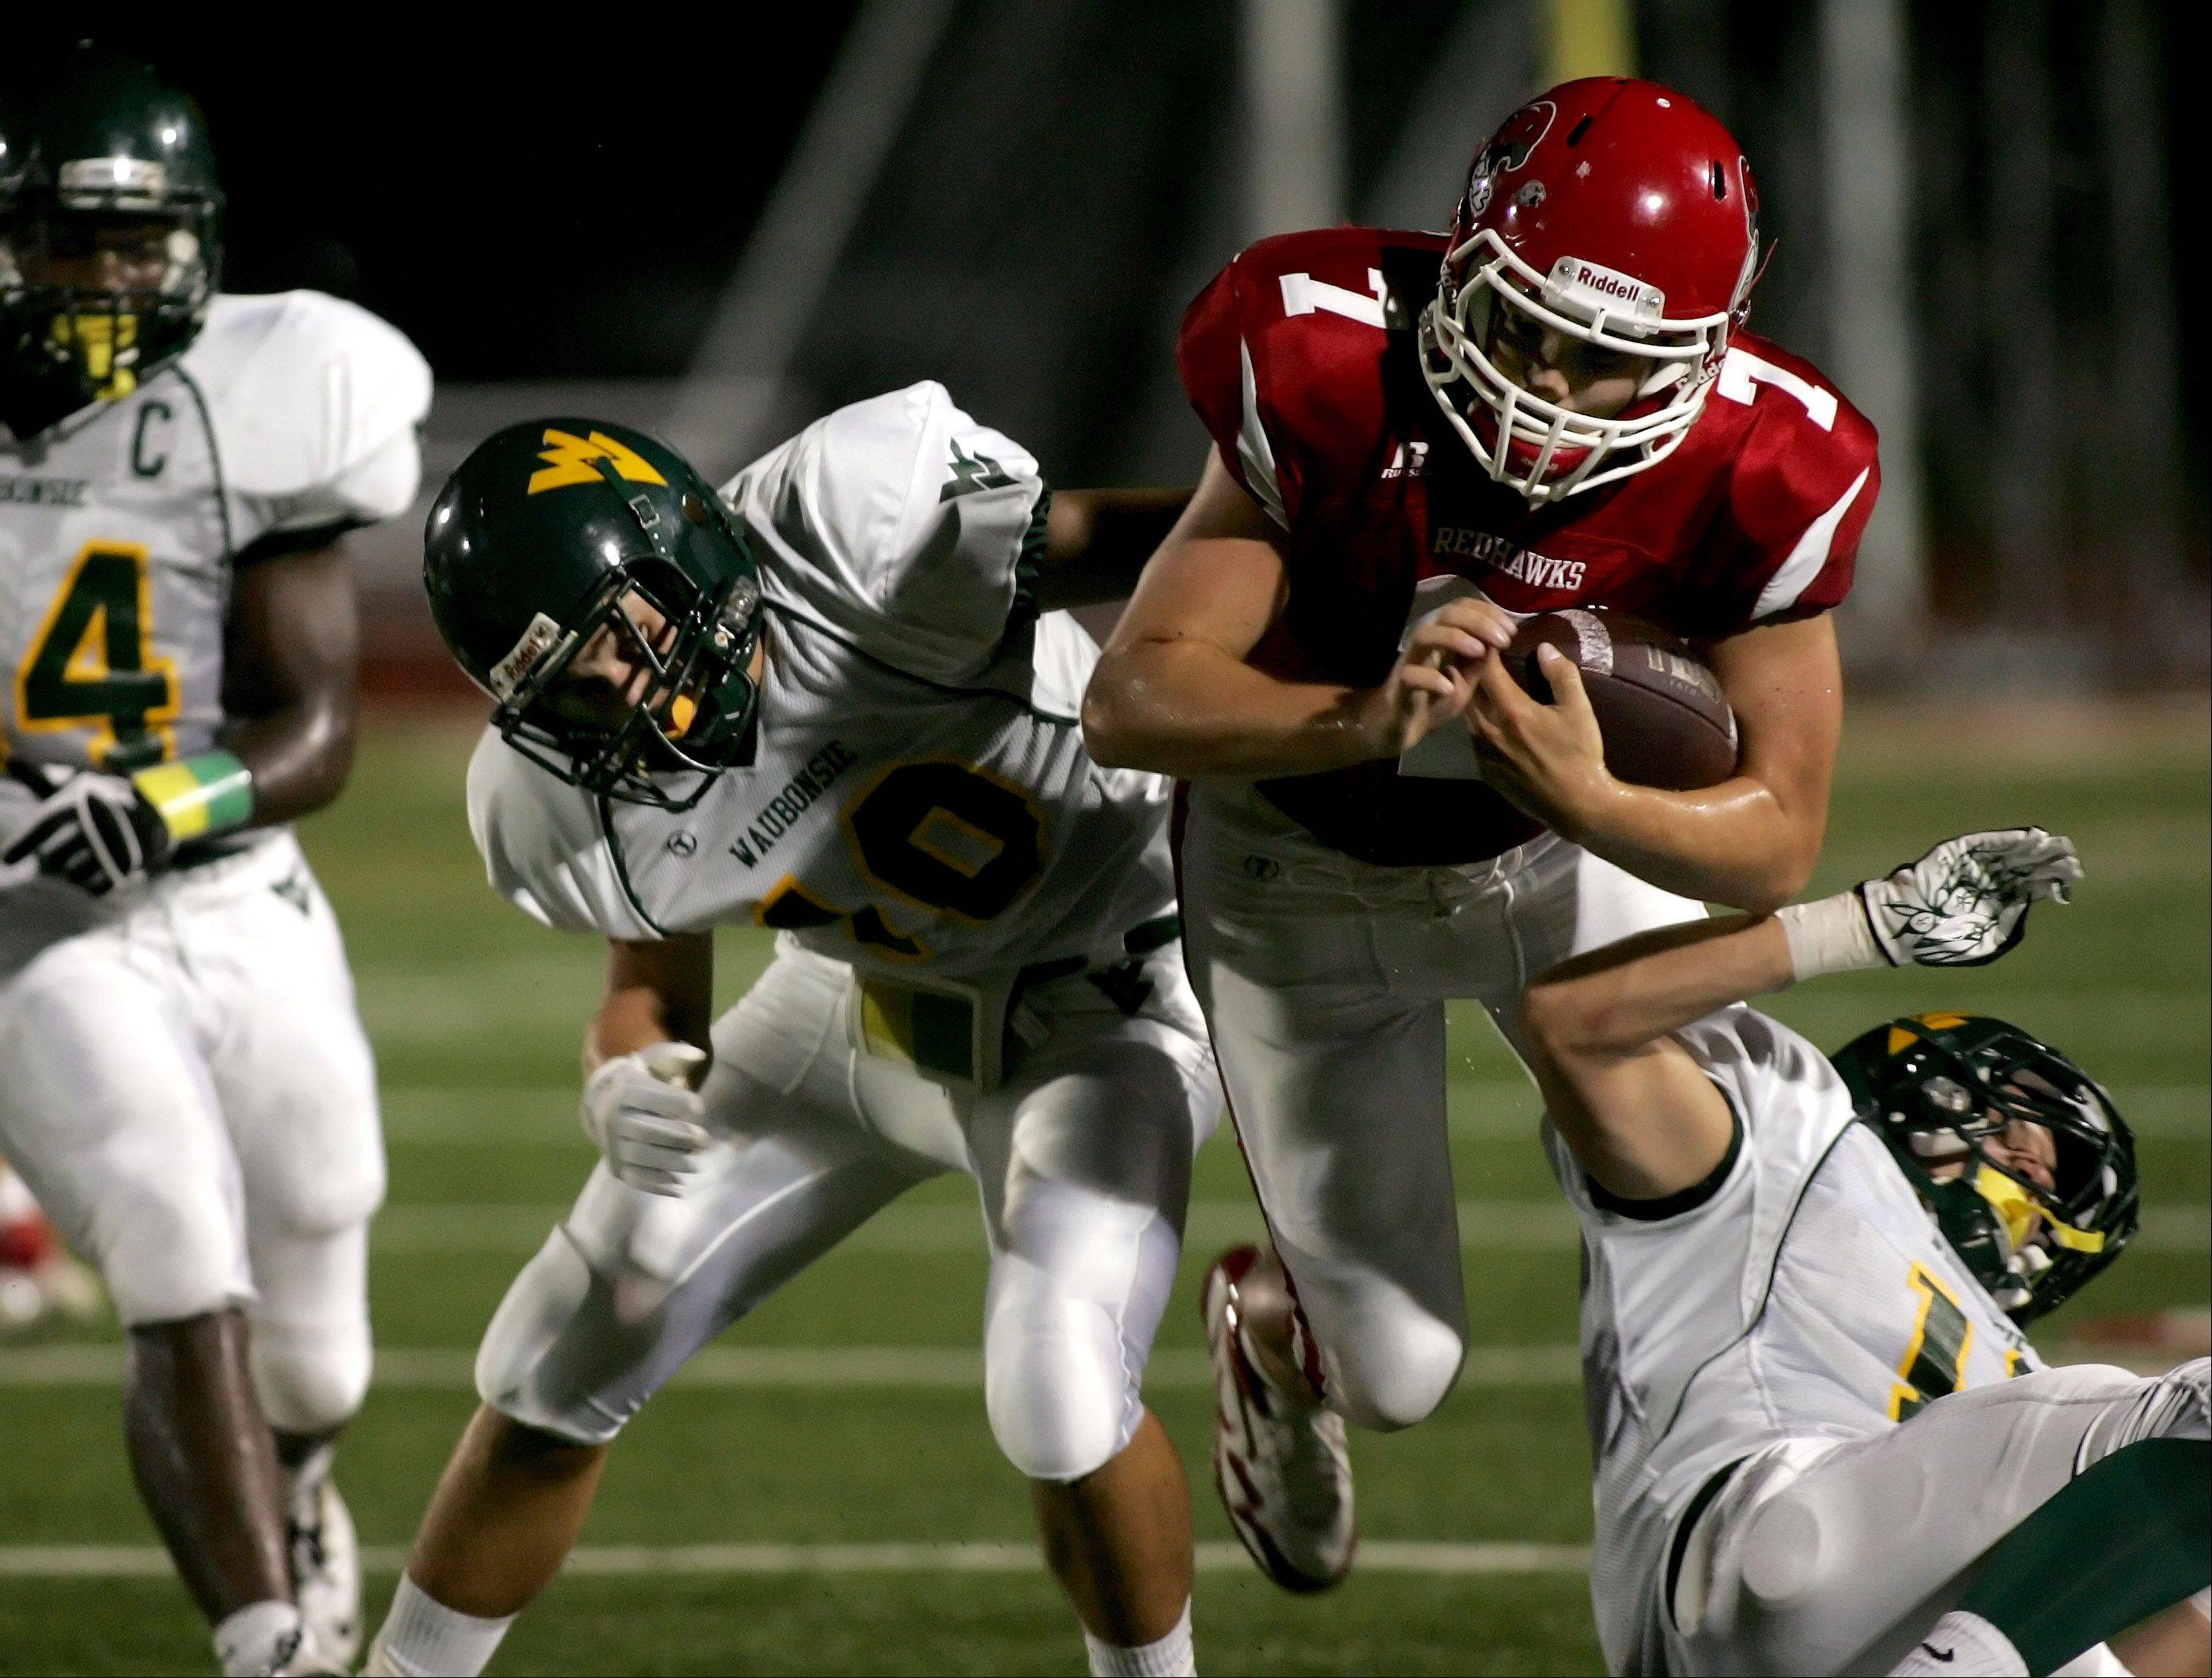 Bev Horne/bhorne@dailyherald.comConnor Mersch, left and Jim Delaney, right, of Waubonsie Valley tackle quarterback Ian Lewandowski of Naperville Central in football action Friday in Naperville.